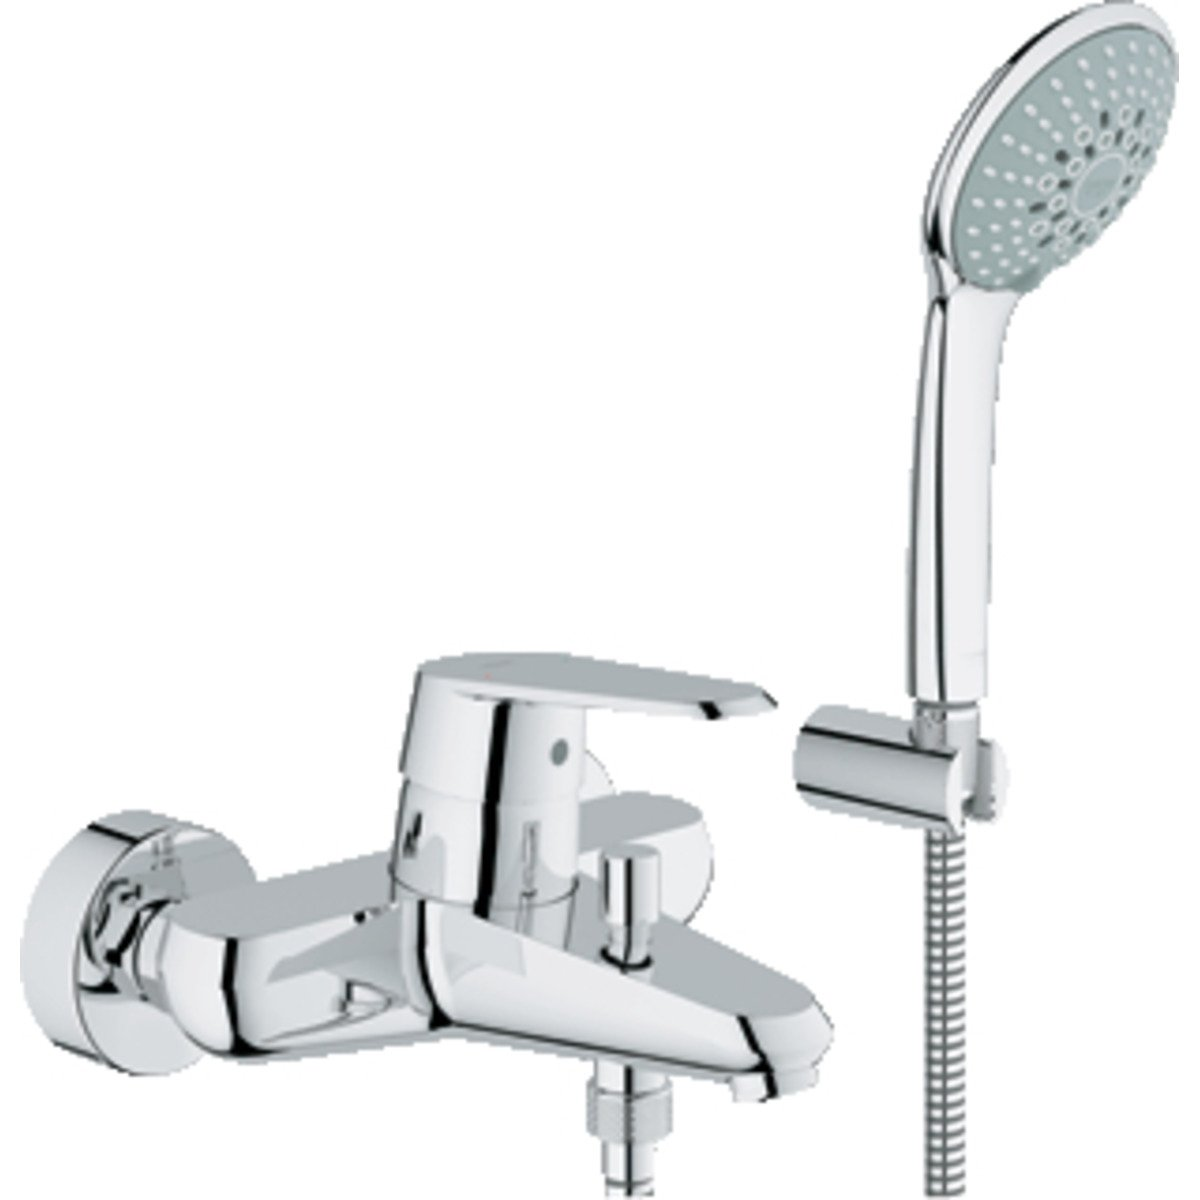 grohe eurodisc cosmopolitan mitigeur de bain avec inverseur et connexion 46mm avec garniture. Black Bedroom Furniture Sets. Home Design Ideas